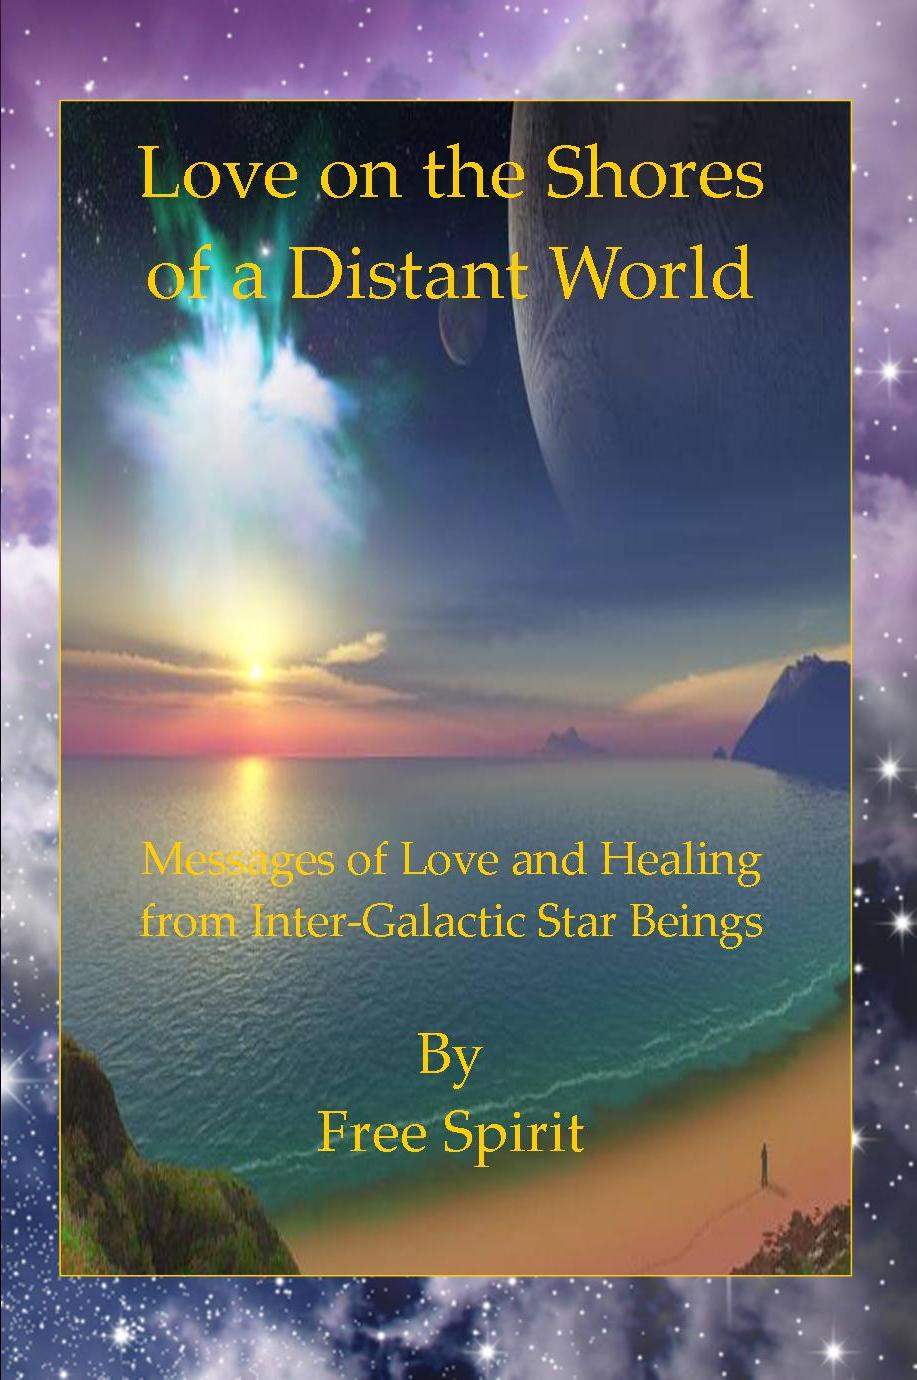 Love on the Shores of a Distant World